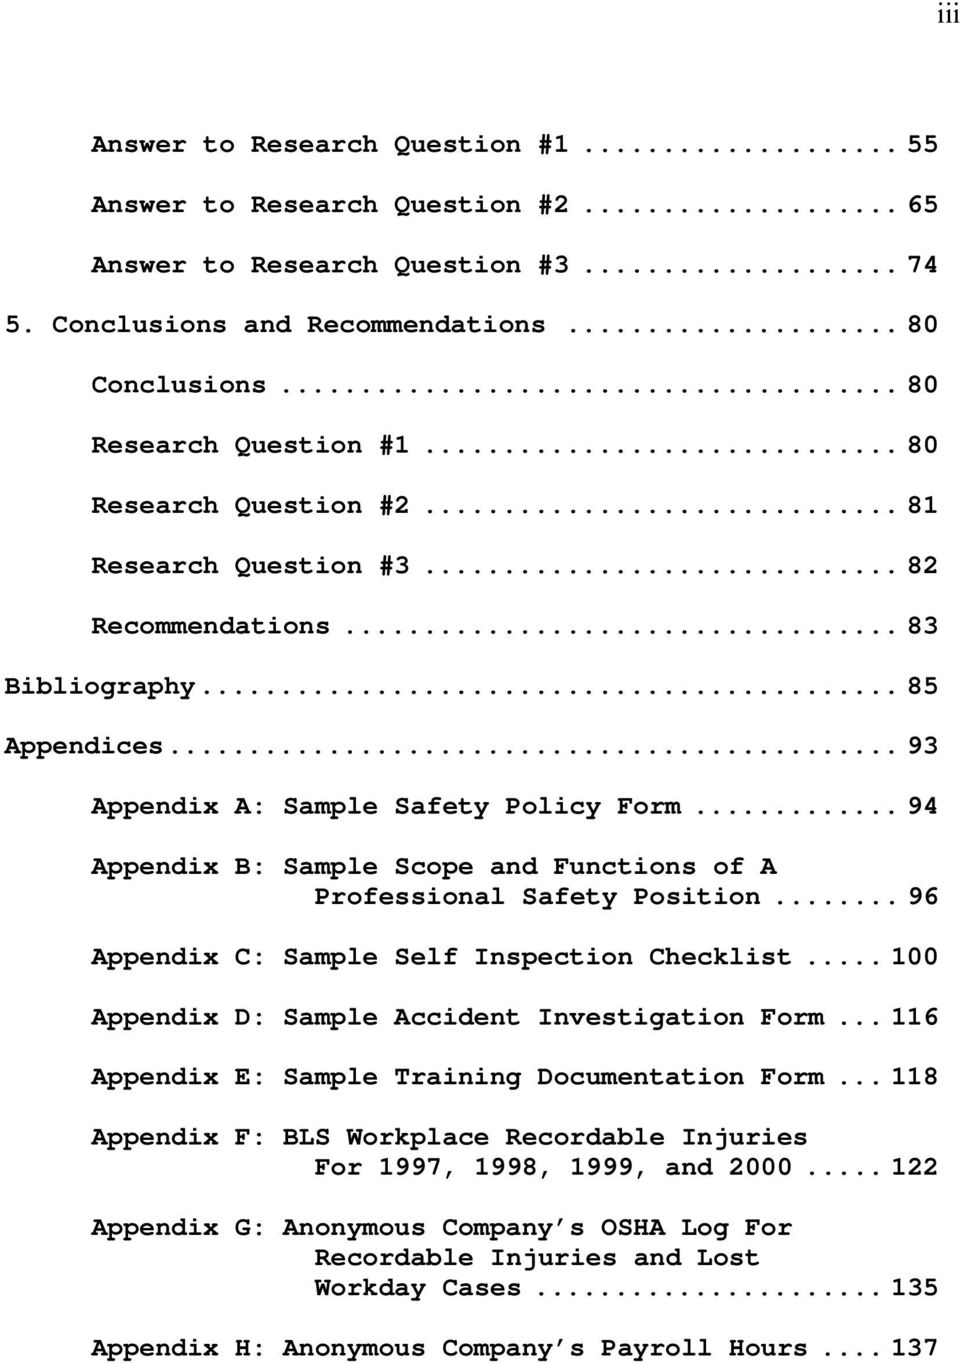 ..94 Appendix B: Sample Scope and Functions of A Professional Safety Position...96 Appendix C: Sample Self Inspection Checklist...100 Appendix D: Sample Accident Investigation Form.